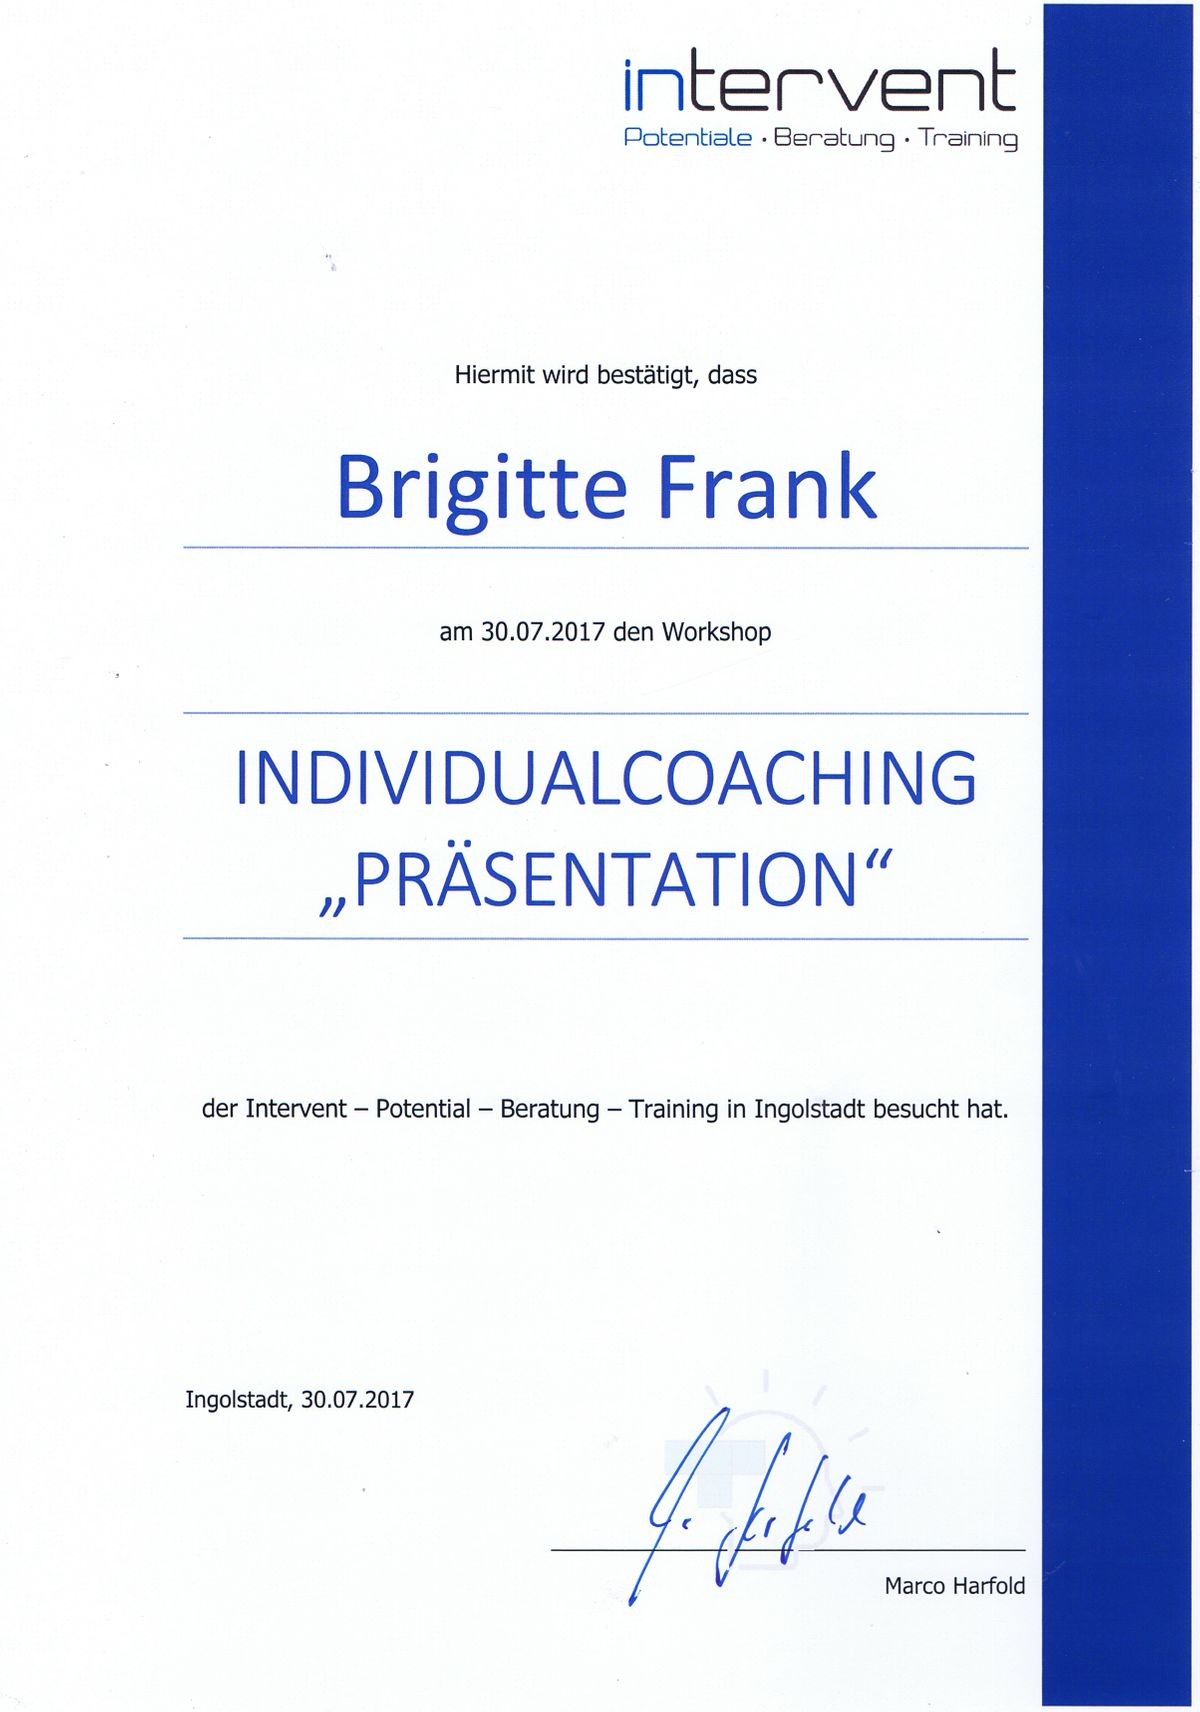 Individualcoaching Präsentation